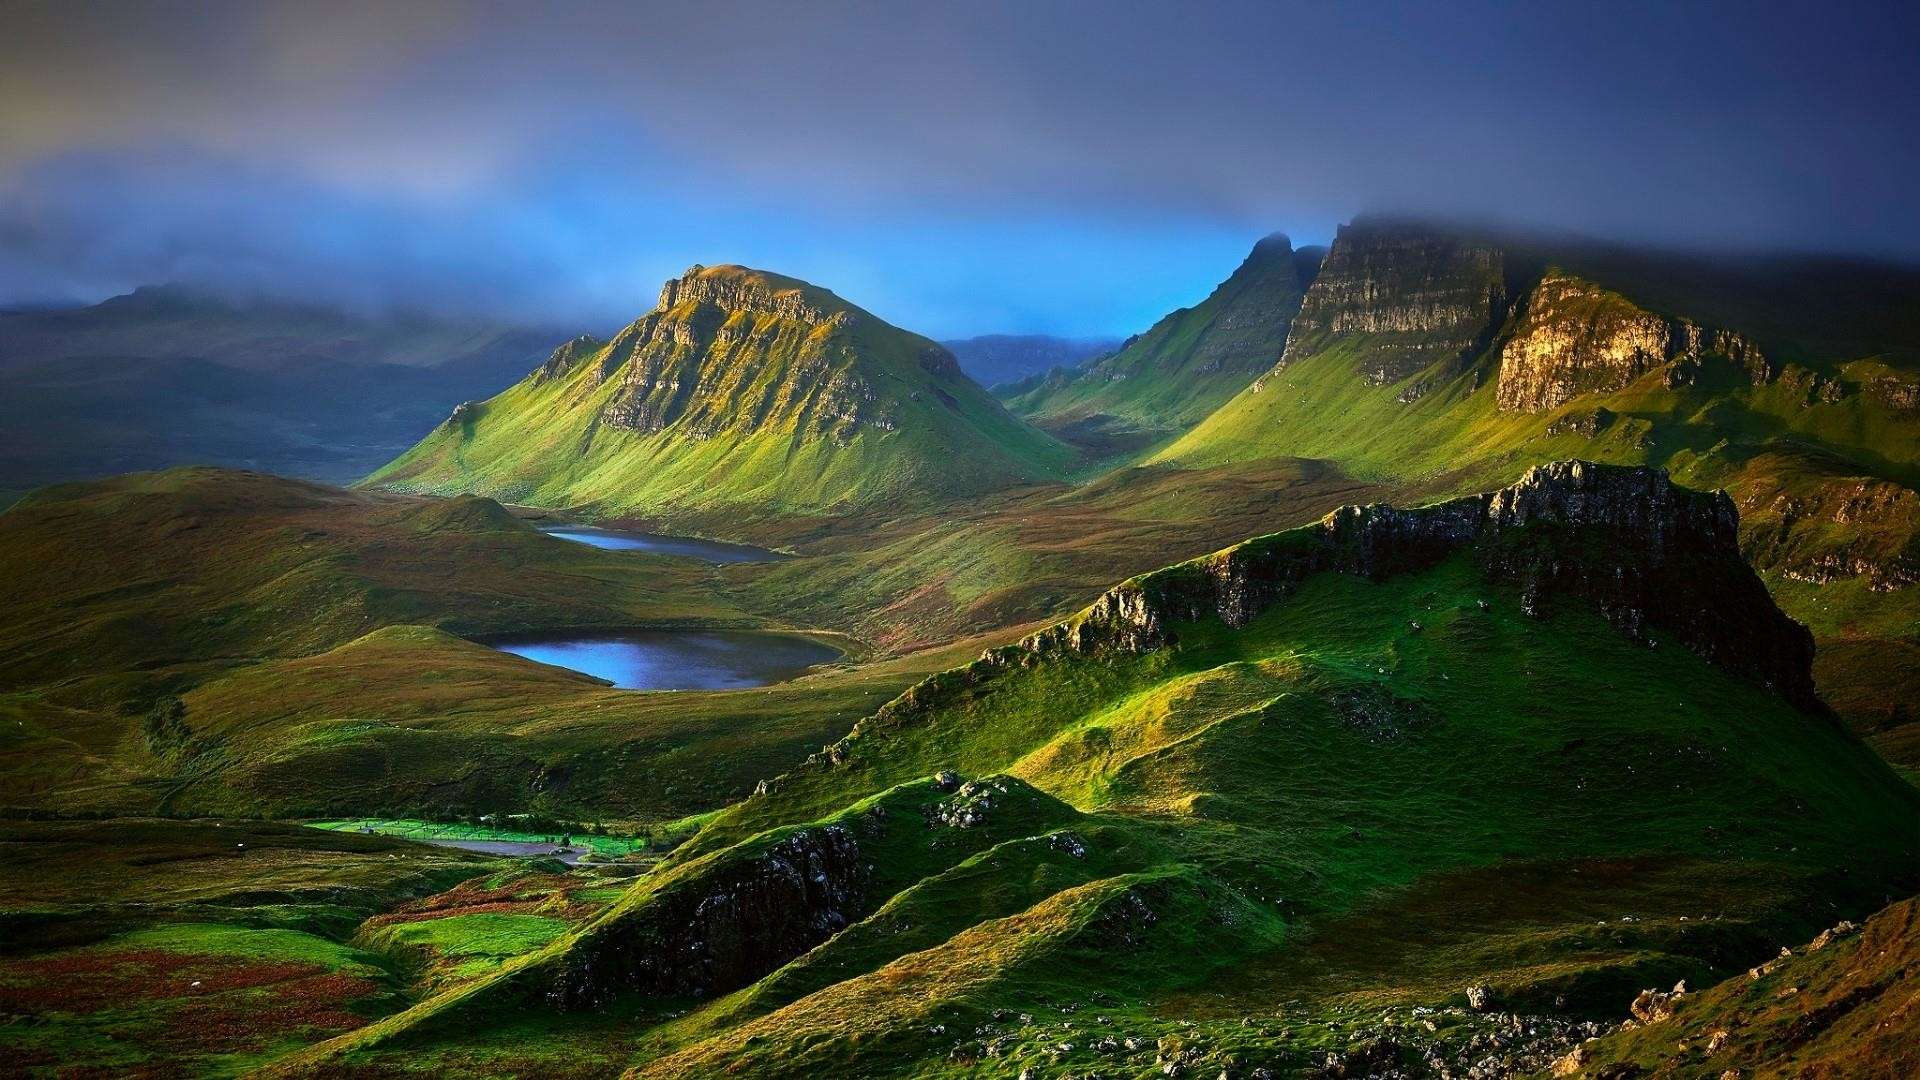 Res: 1920x1080, Isle Of Skye, Scotland Wallpaper | Wallpaper Studio 10 | Tens of thousands  HD and UltraHD wallpapers for Android, Windows and Xbox